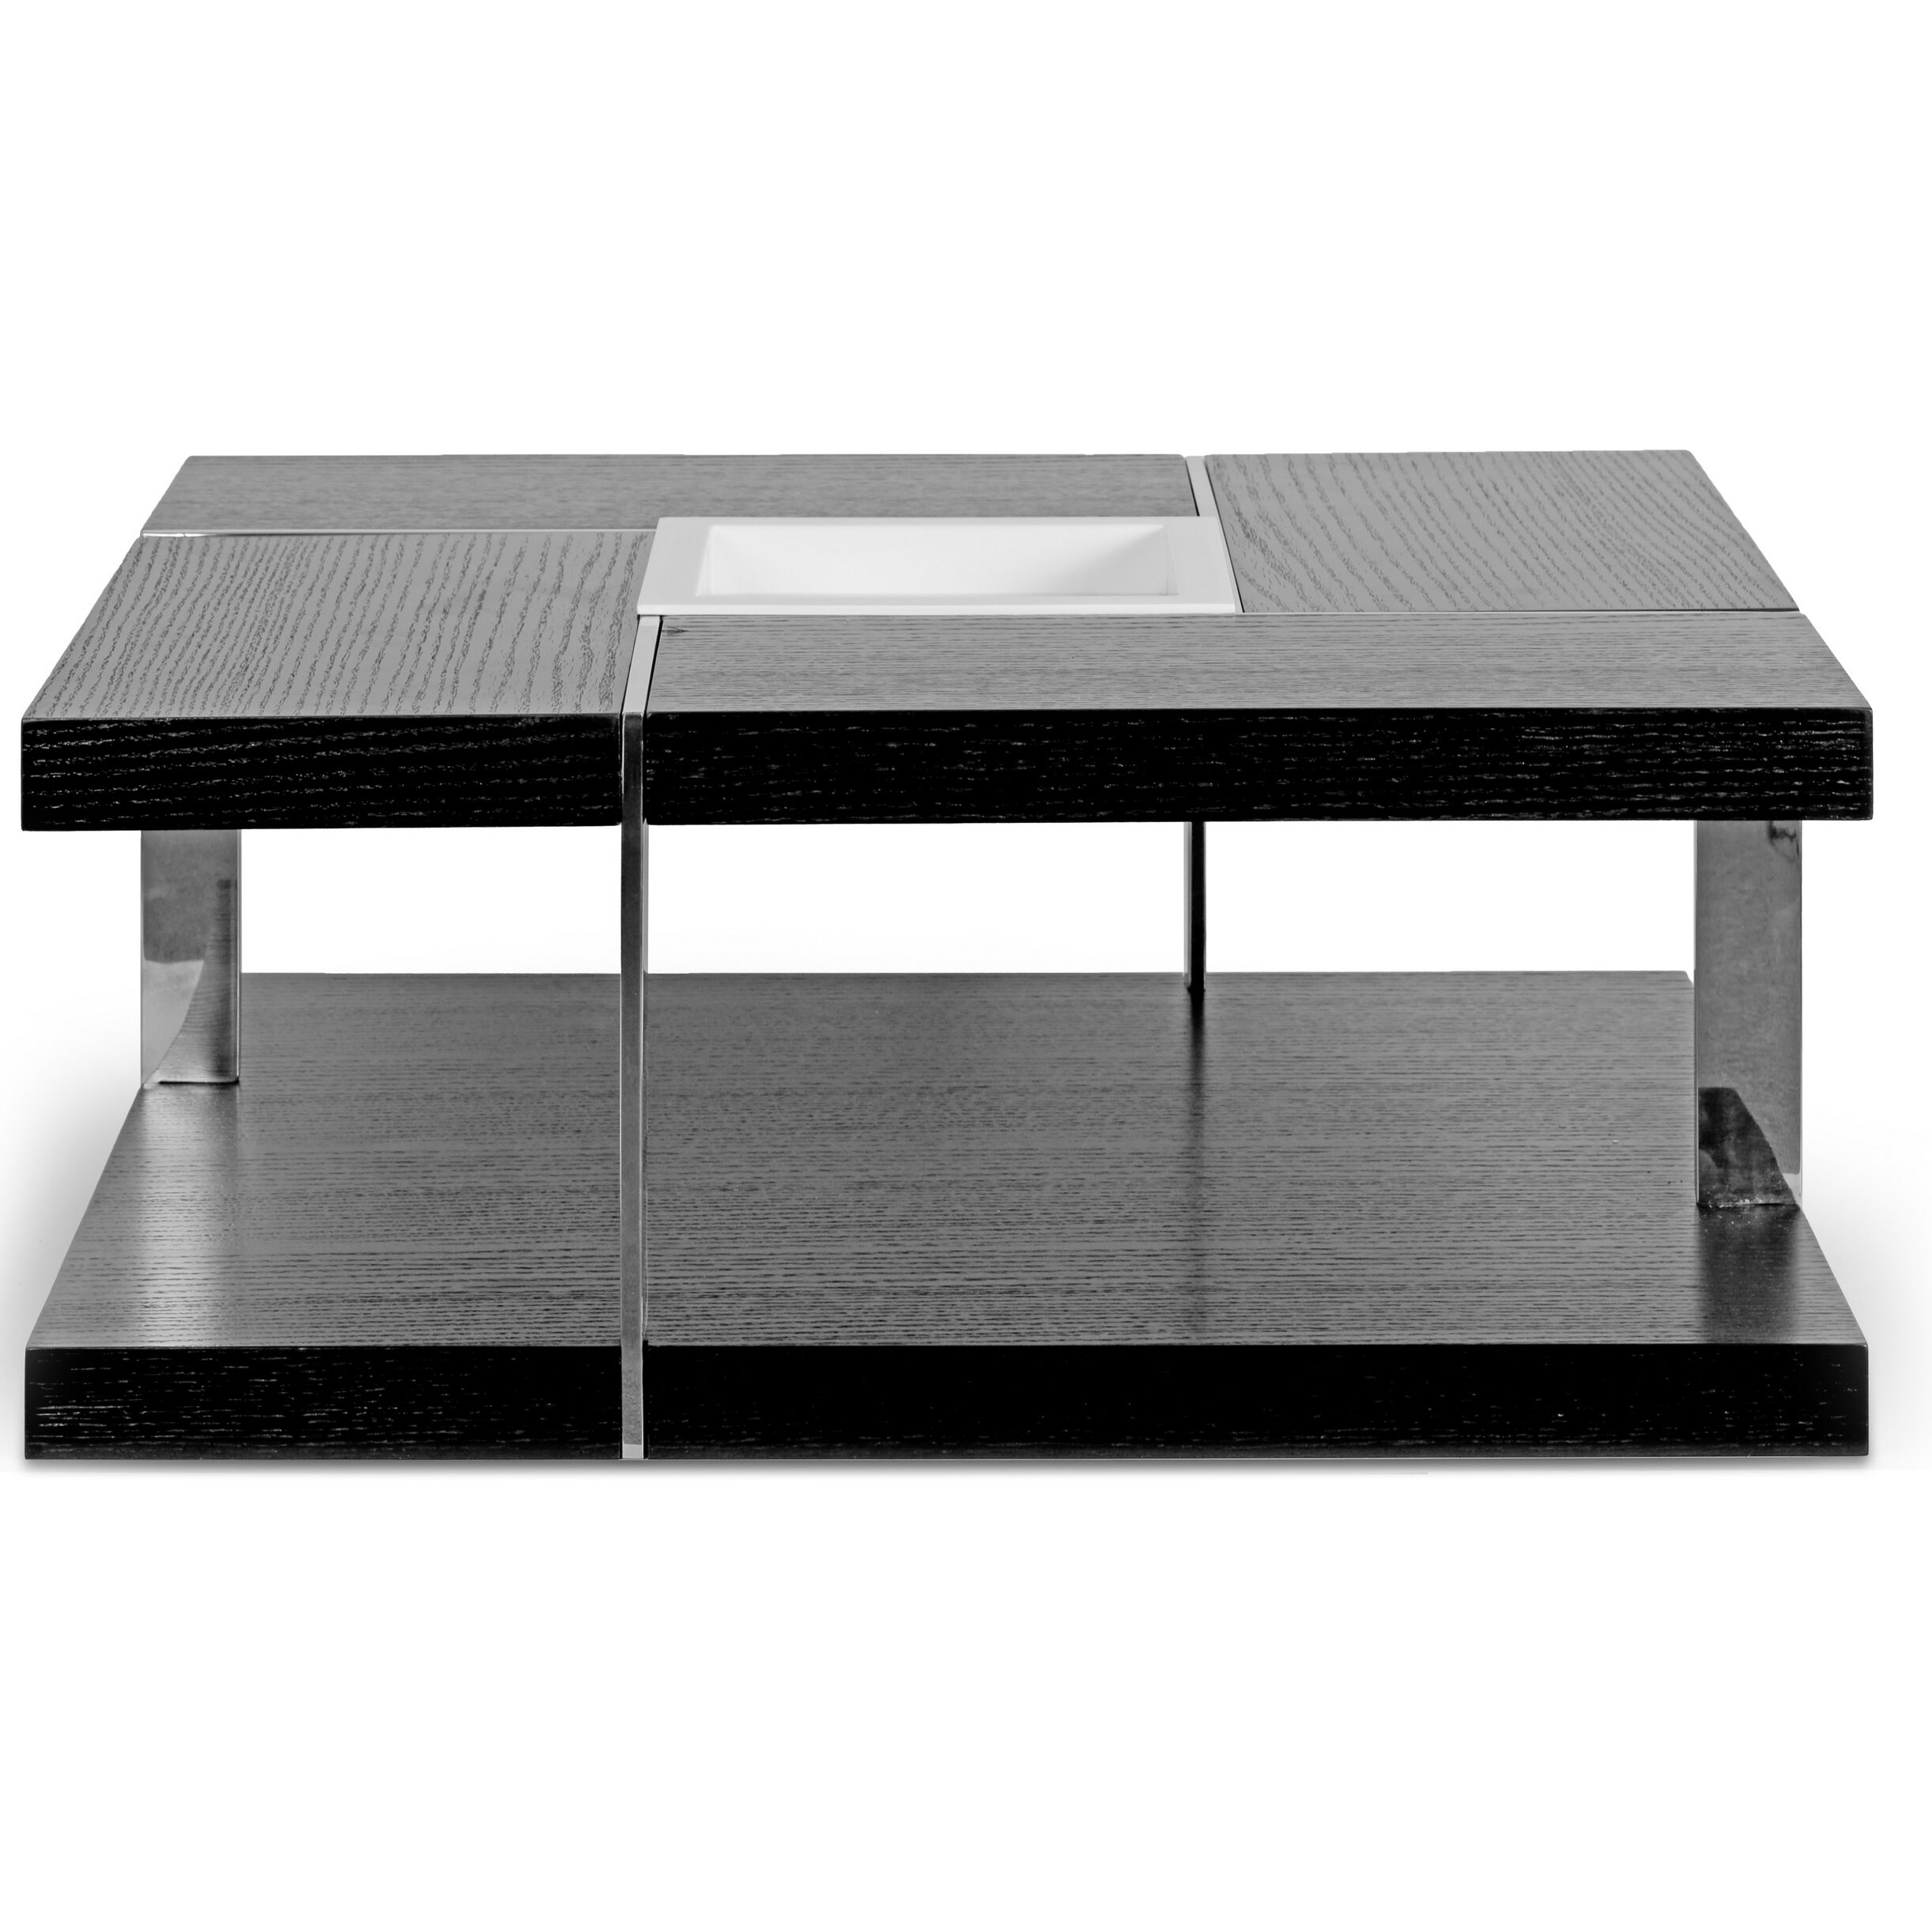 Square Coffee Table: Glamour Home Decor Aira Square Coffee Table With Tray Top